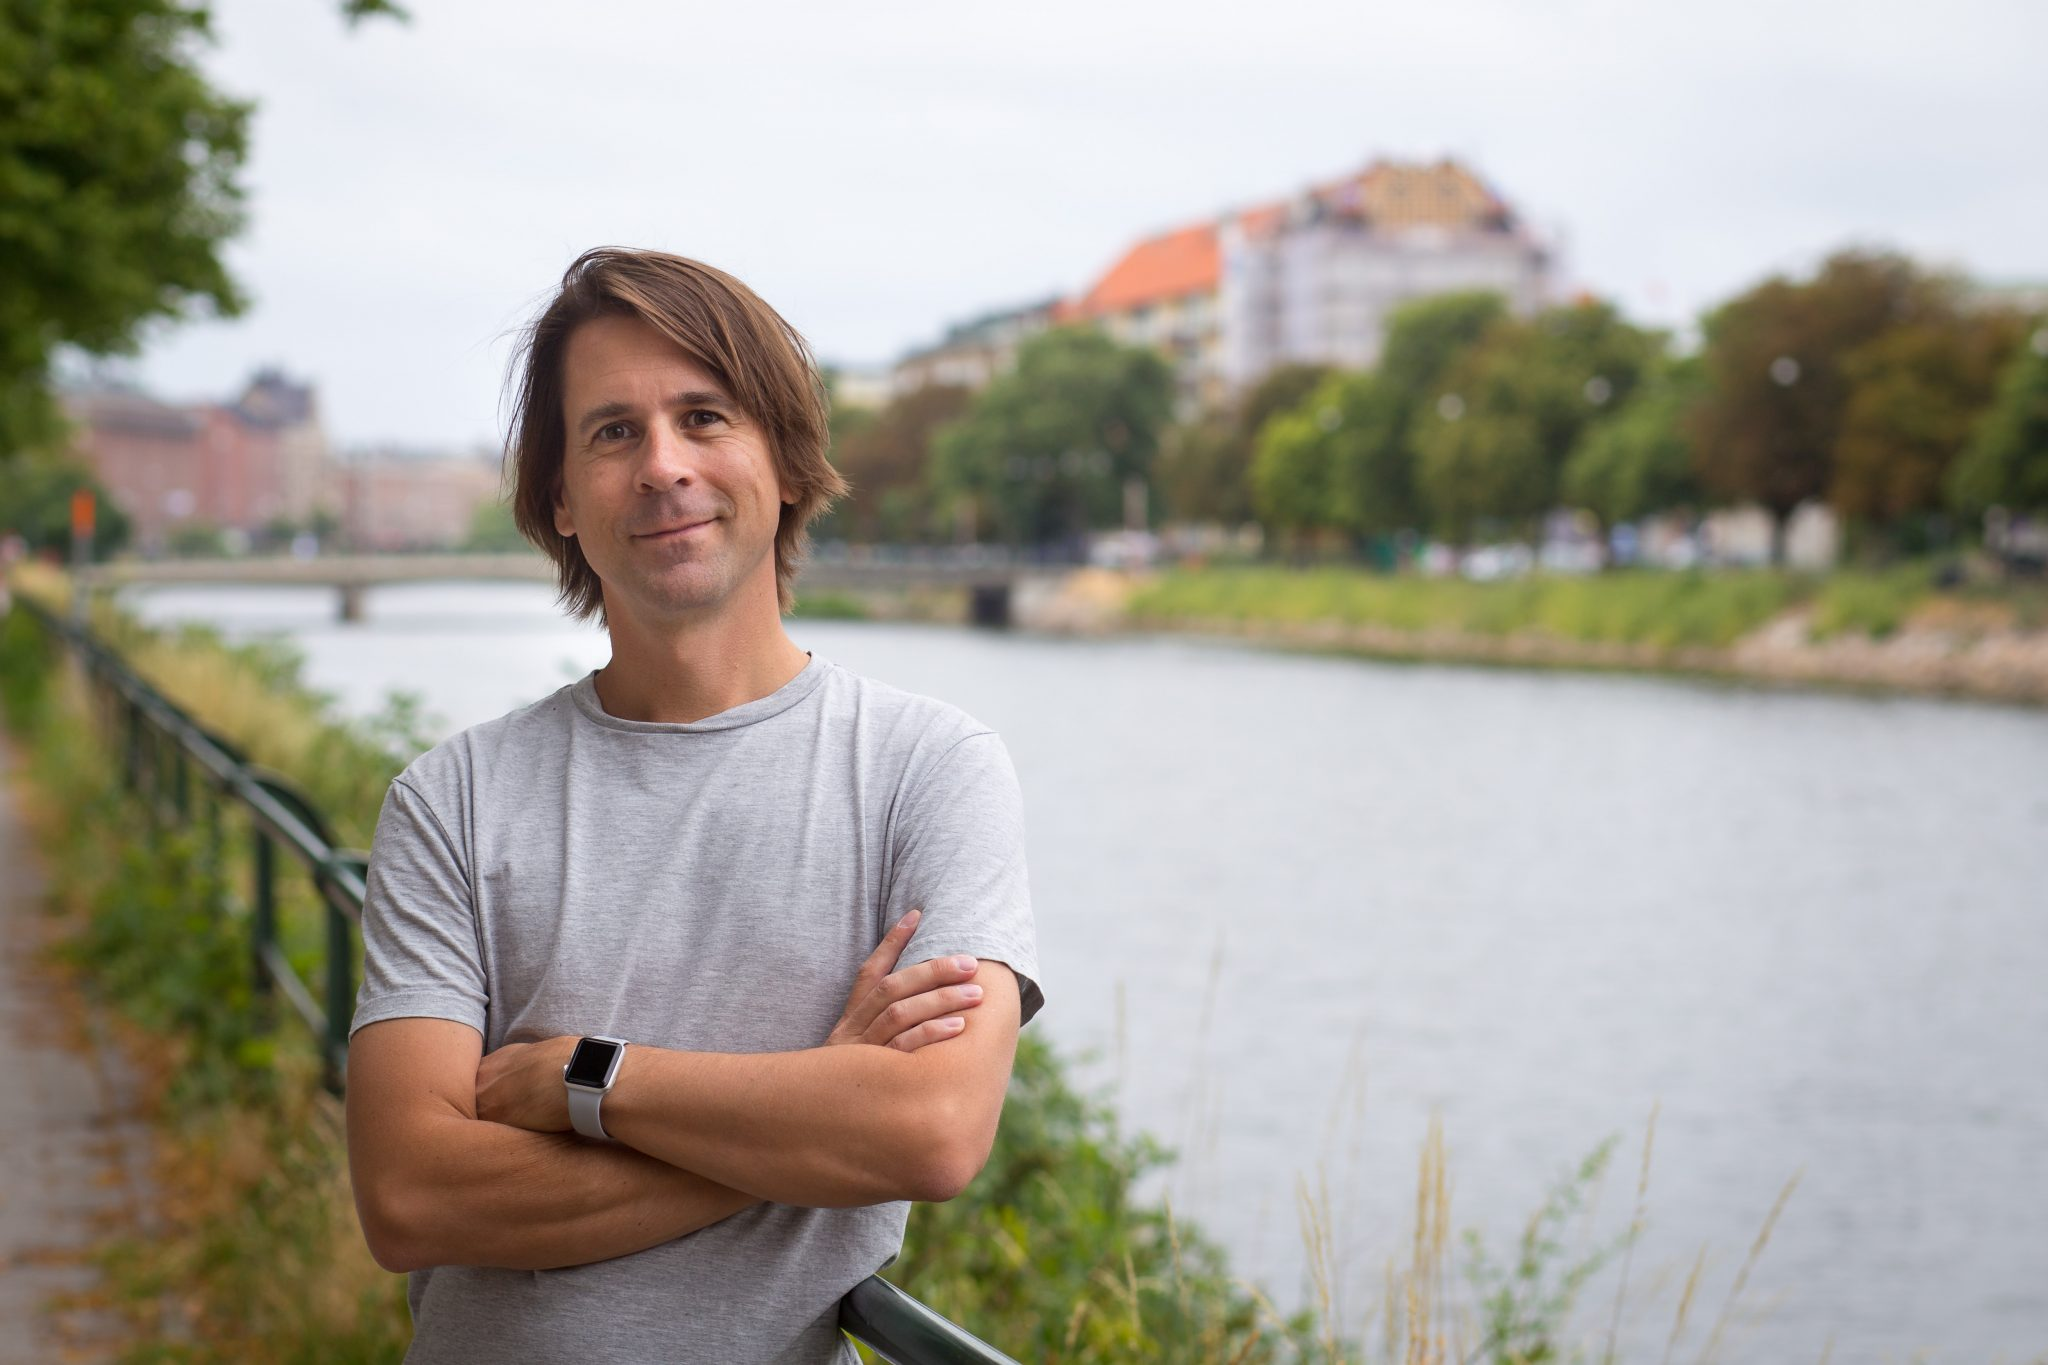 Image of Jan Erik Solem, the Chief Executive and cofounder of Mapillary